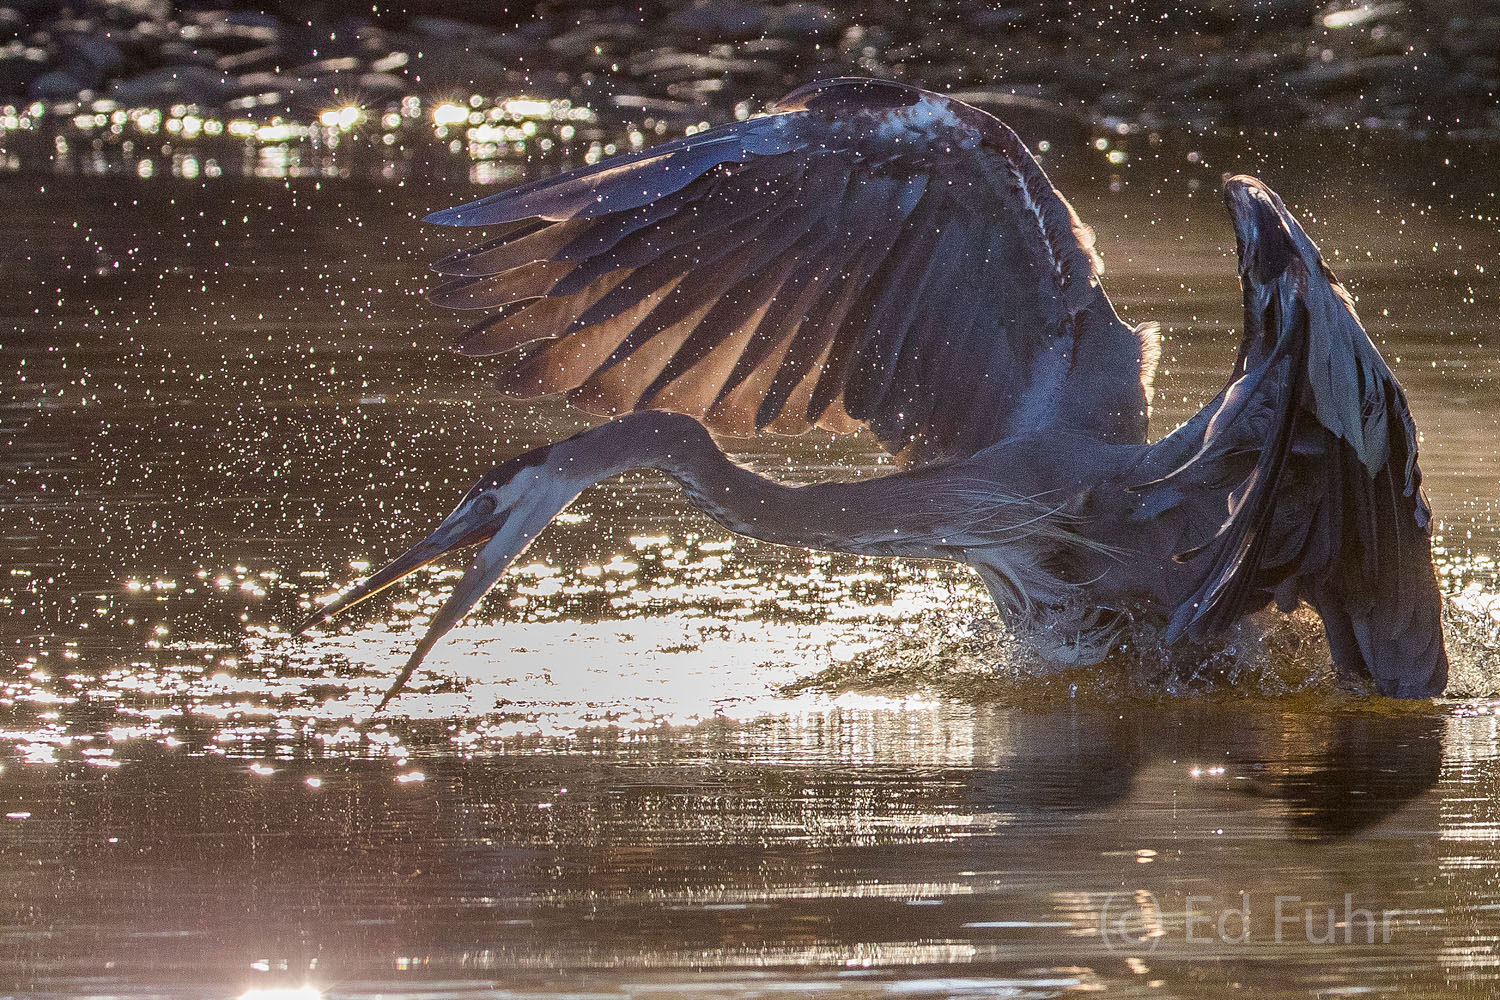 Great blue herons are ferocious birds, capable of eating dozens of fish per day, piercing them at time and swallowing them whole...